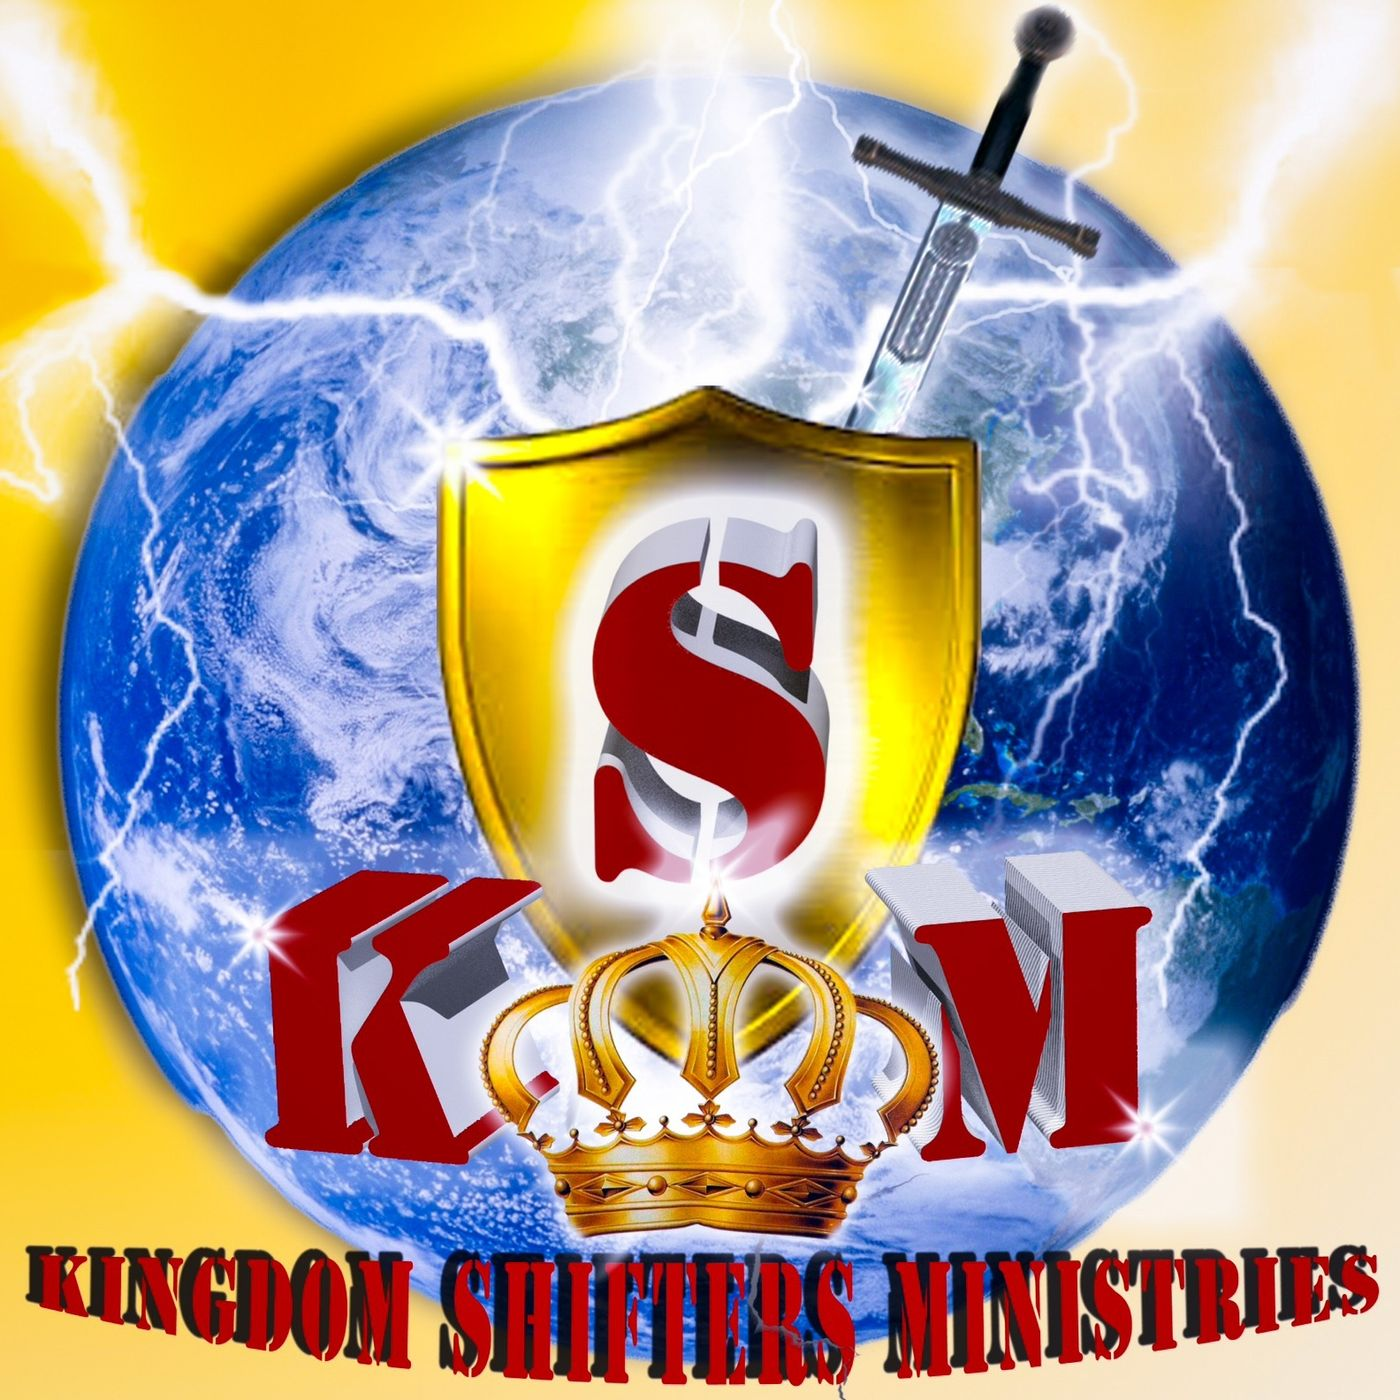 Kingdom Shifters Ministries